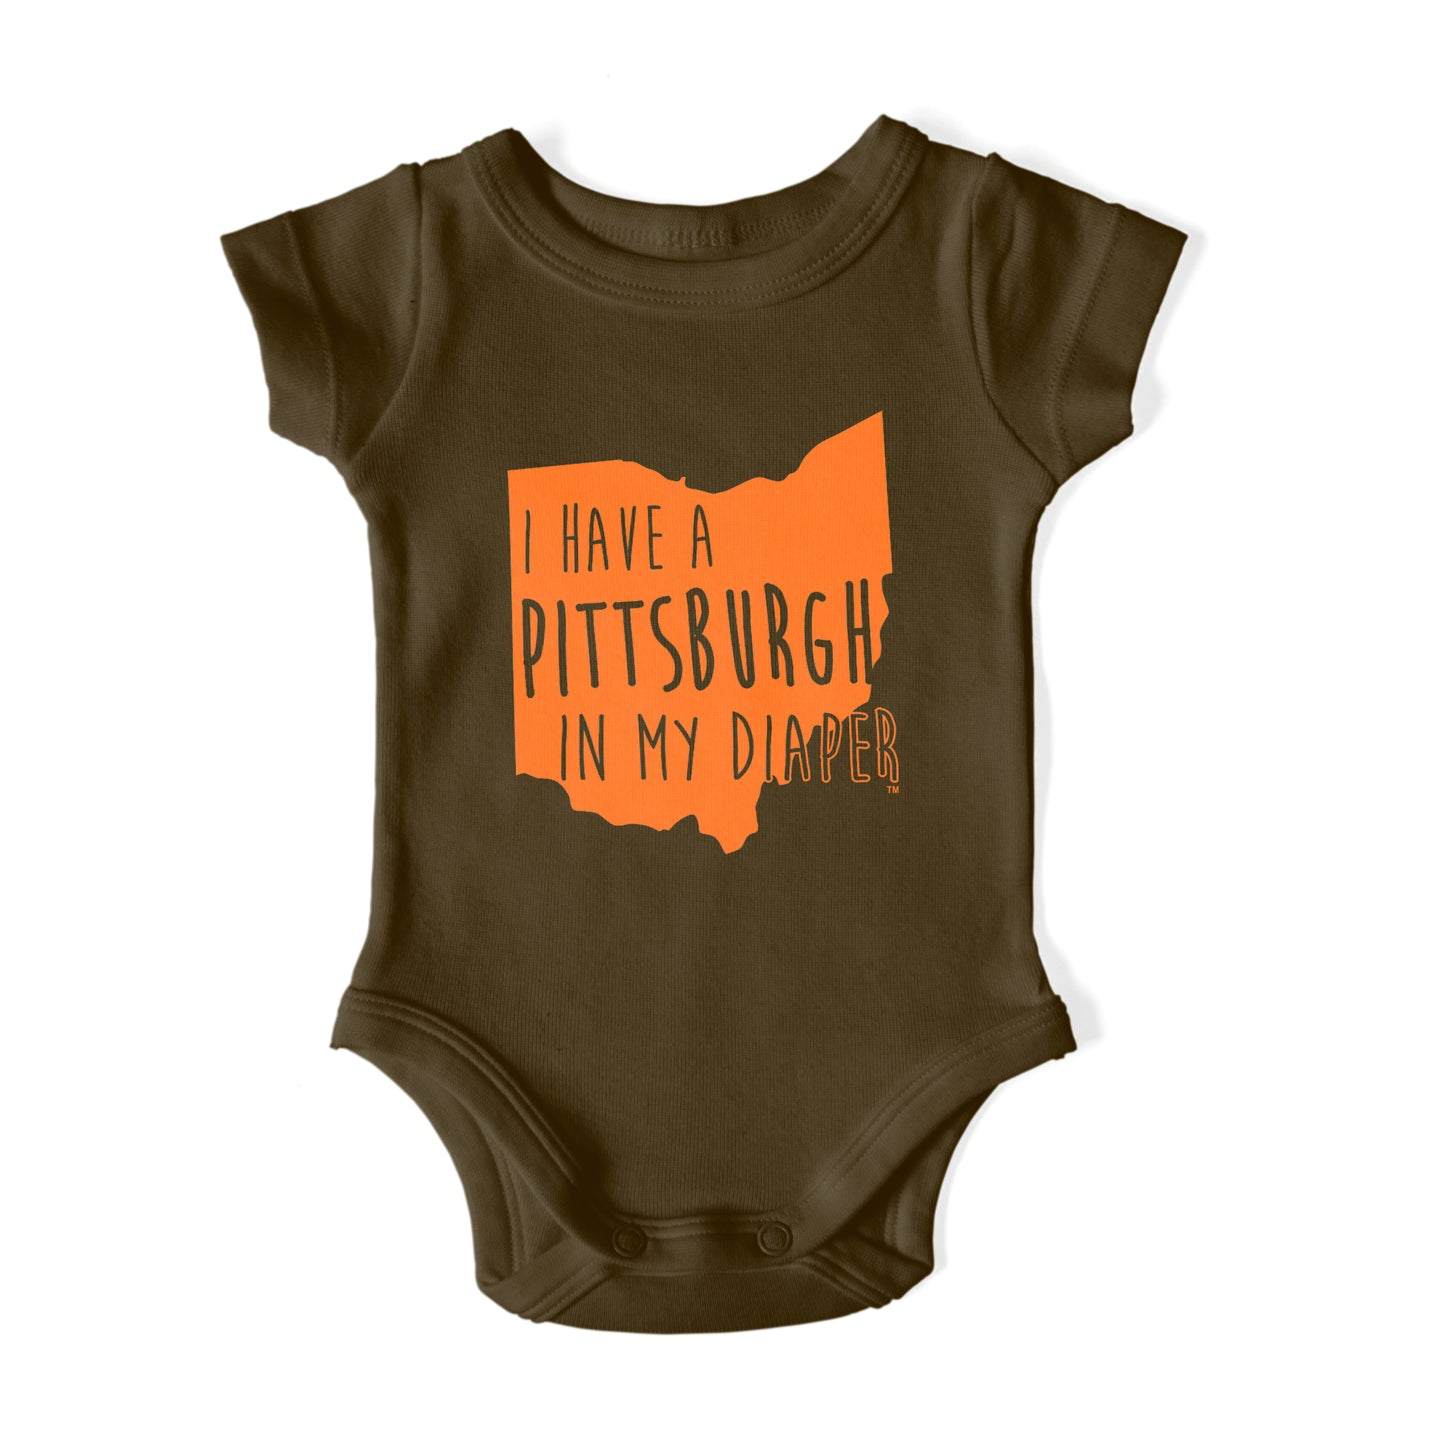 I HAVE A PITTSBURGH IN MY DIAPER Baby One Piece